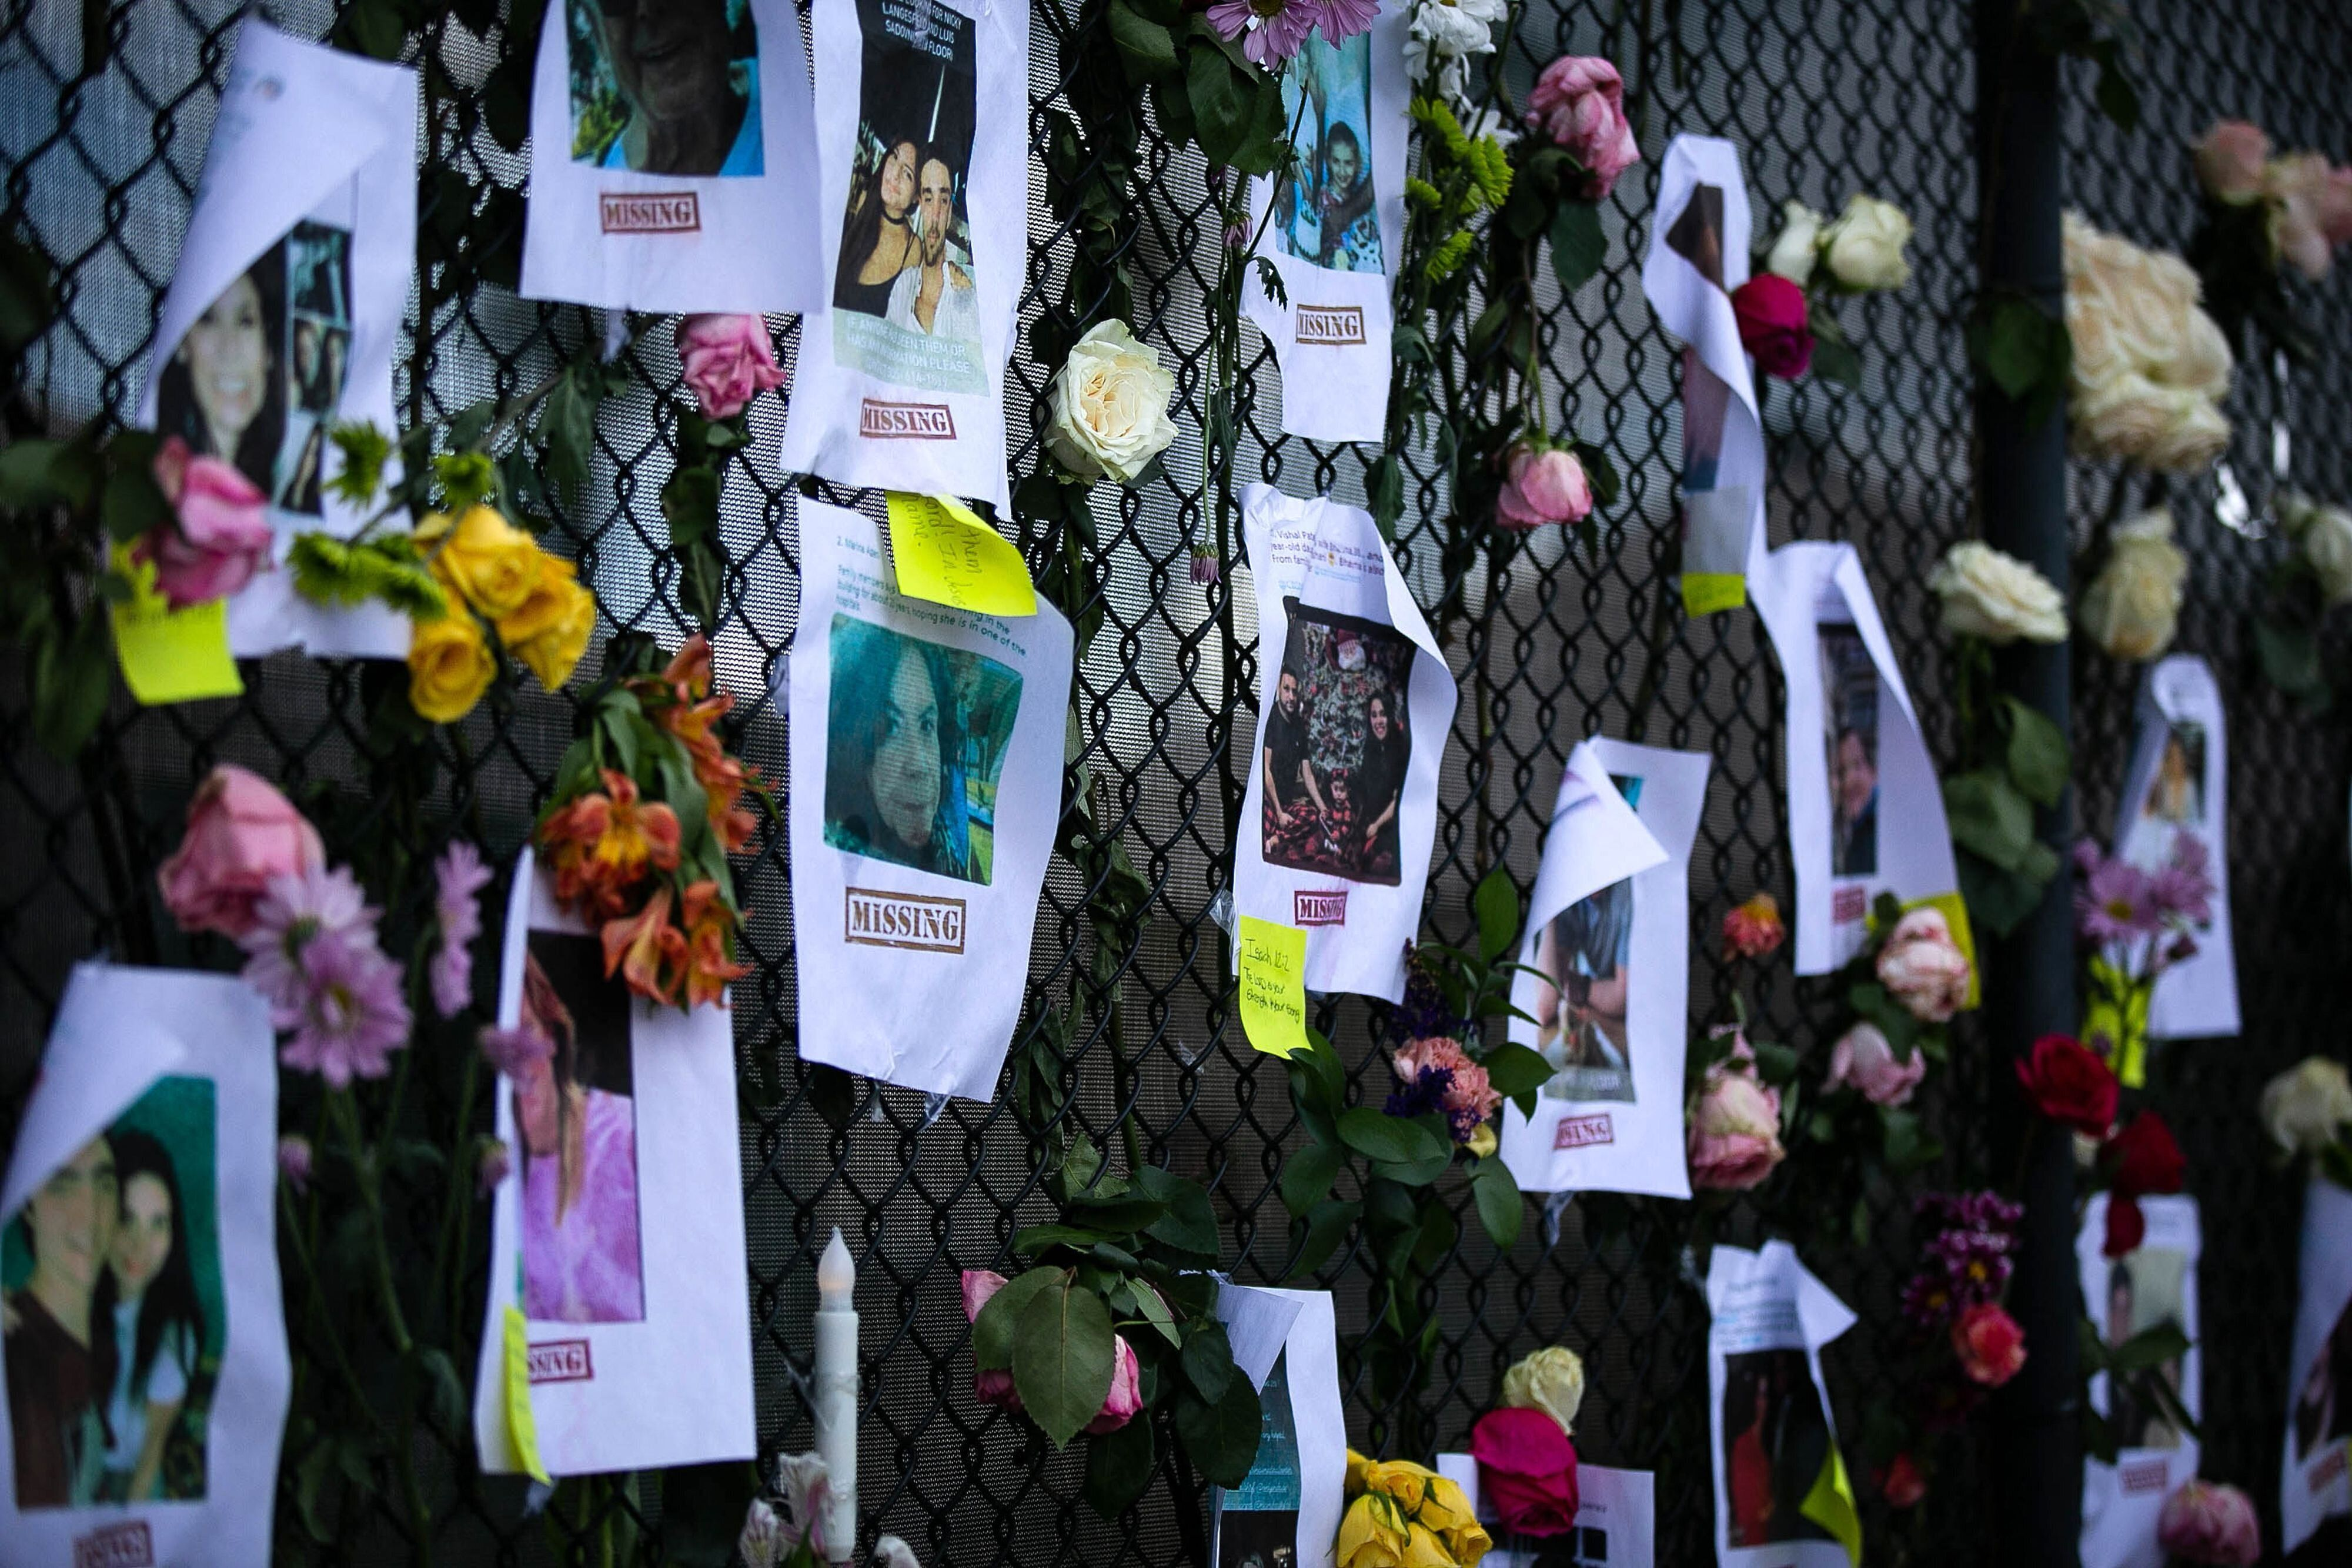 Photos of missing residents are posted at a makeshift memorial at the site of the collapsed building in Surfside.